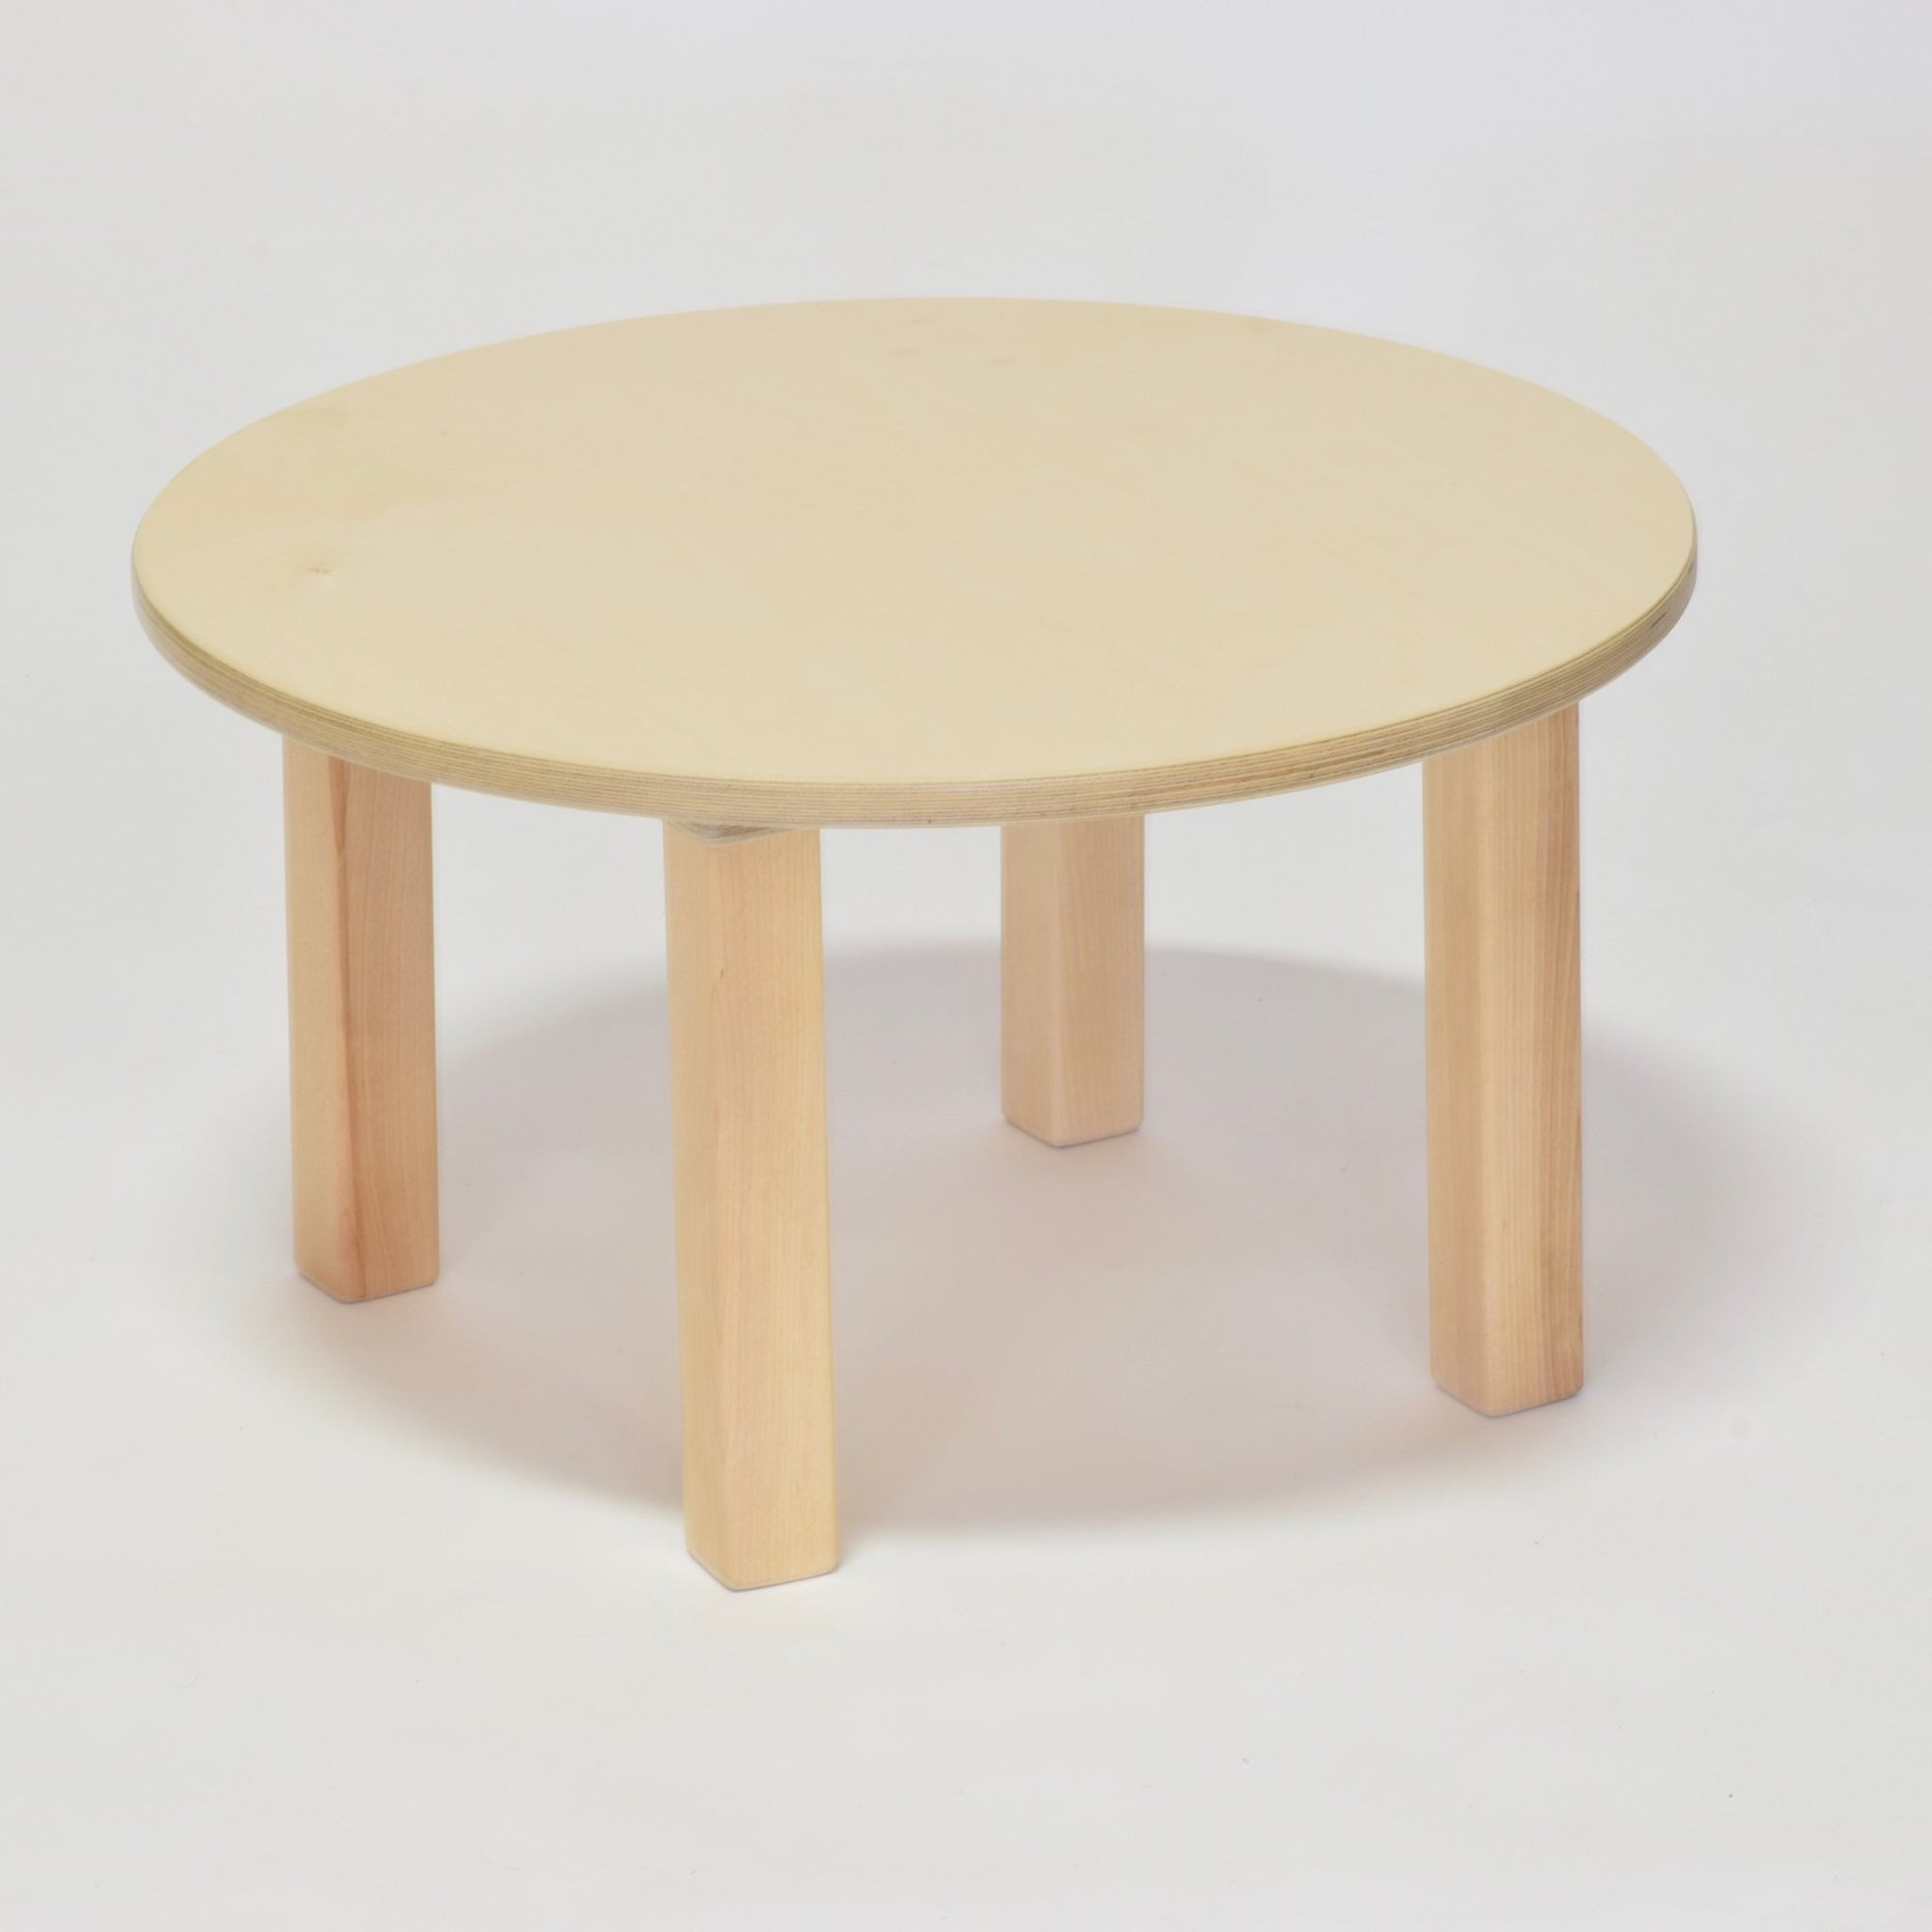 Round Table - RAD Children's Furniture - pikler triangle - montessori toddler furniture - climbing triangle - nursery room